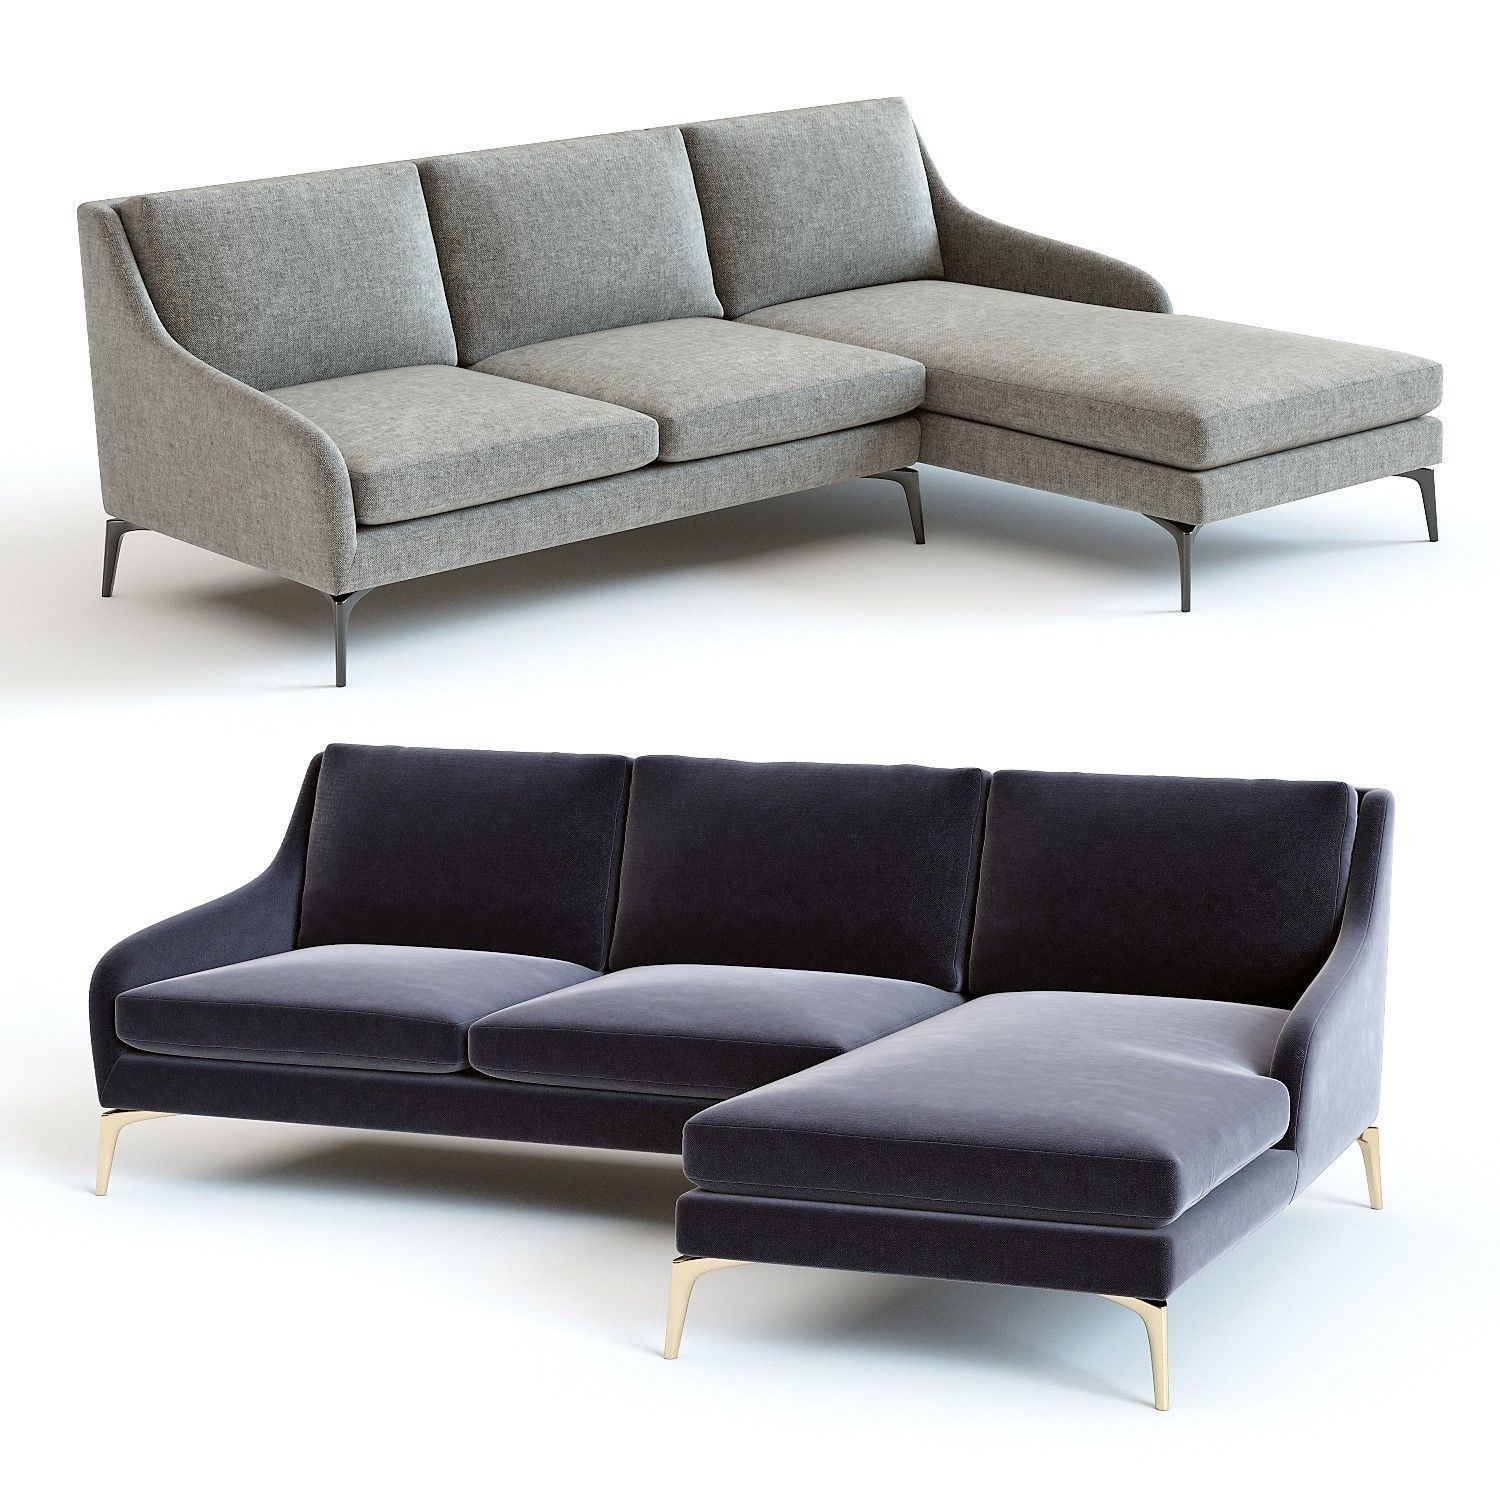 3D Model West Elm – Alto Sectional Sofa | Cgtrader Within West Elm Sectional Sofas (View 2 of 15)